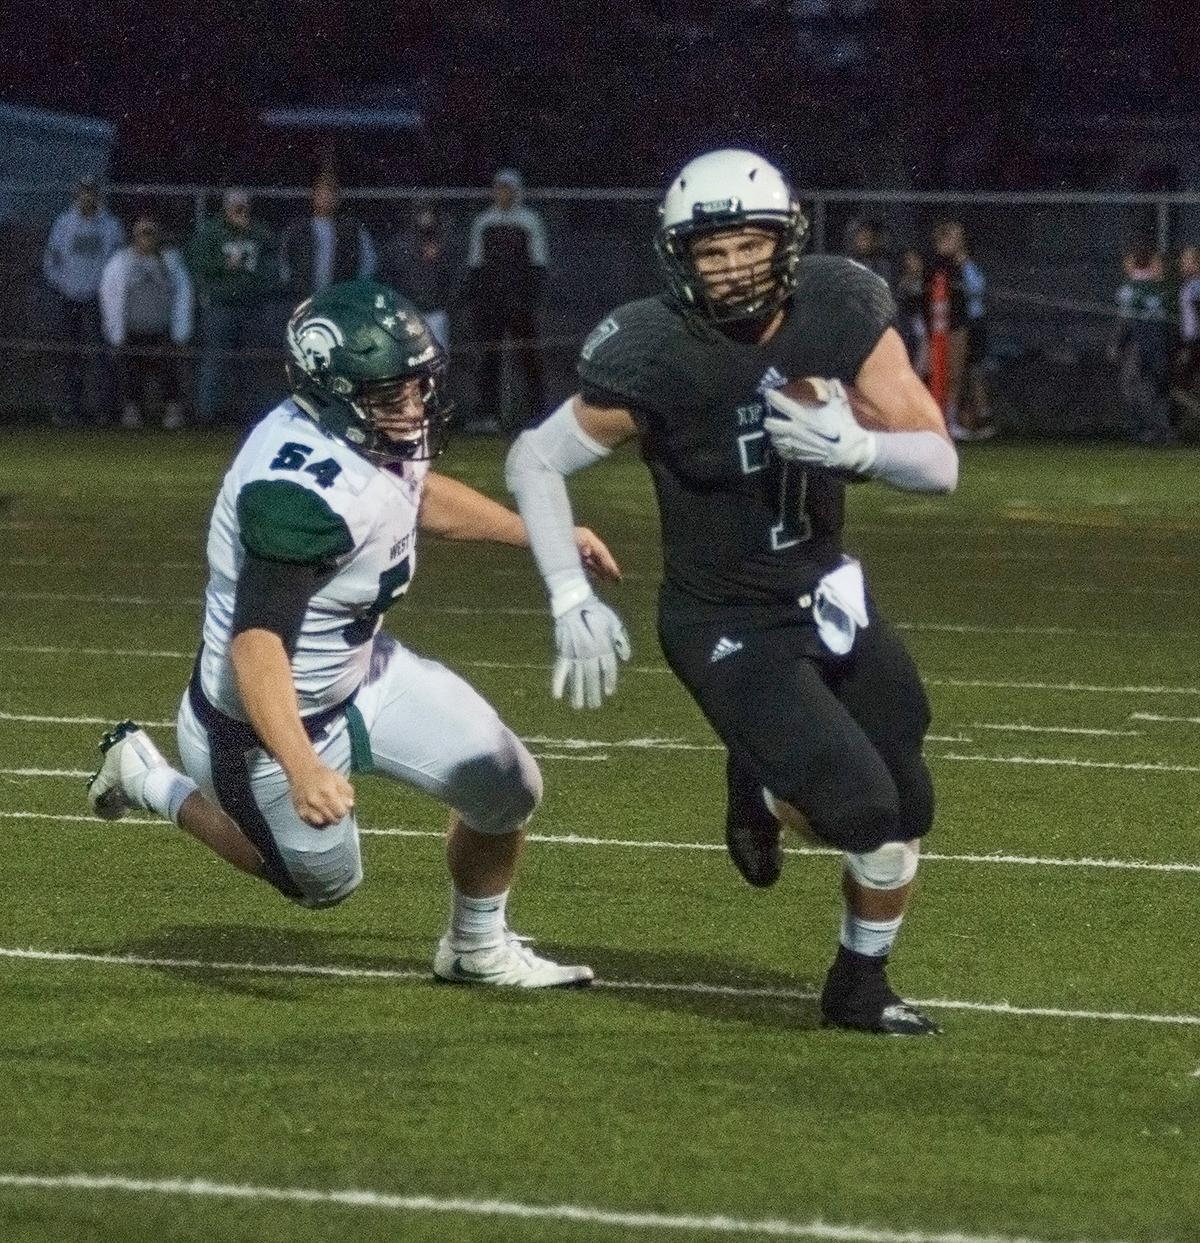 Sheldon Irish running back Jared Banks (#7) runs the ball downfield with West Salem Titans offensive lineman Jake Yates close behind.  On a rainy Monday evening, Sheldon defeated West Salem 41 to 7 at their home field. The game had been postponed from Friday due to unhealthy levels of smoke in the atmosphere from nearby forest fires. Abigail Winn, Oregon News Lab